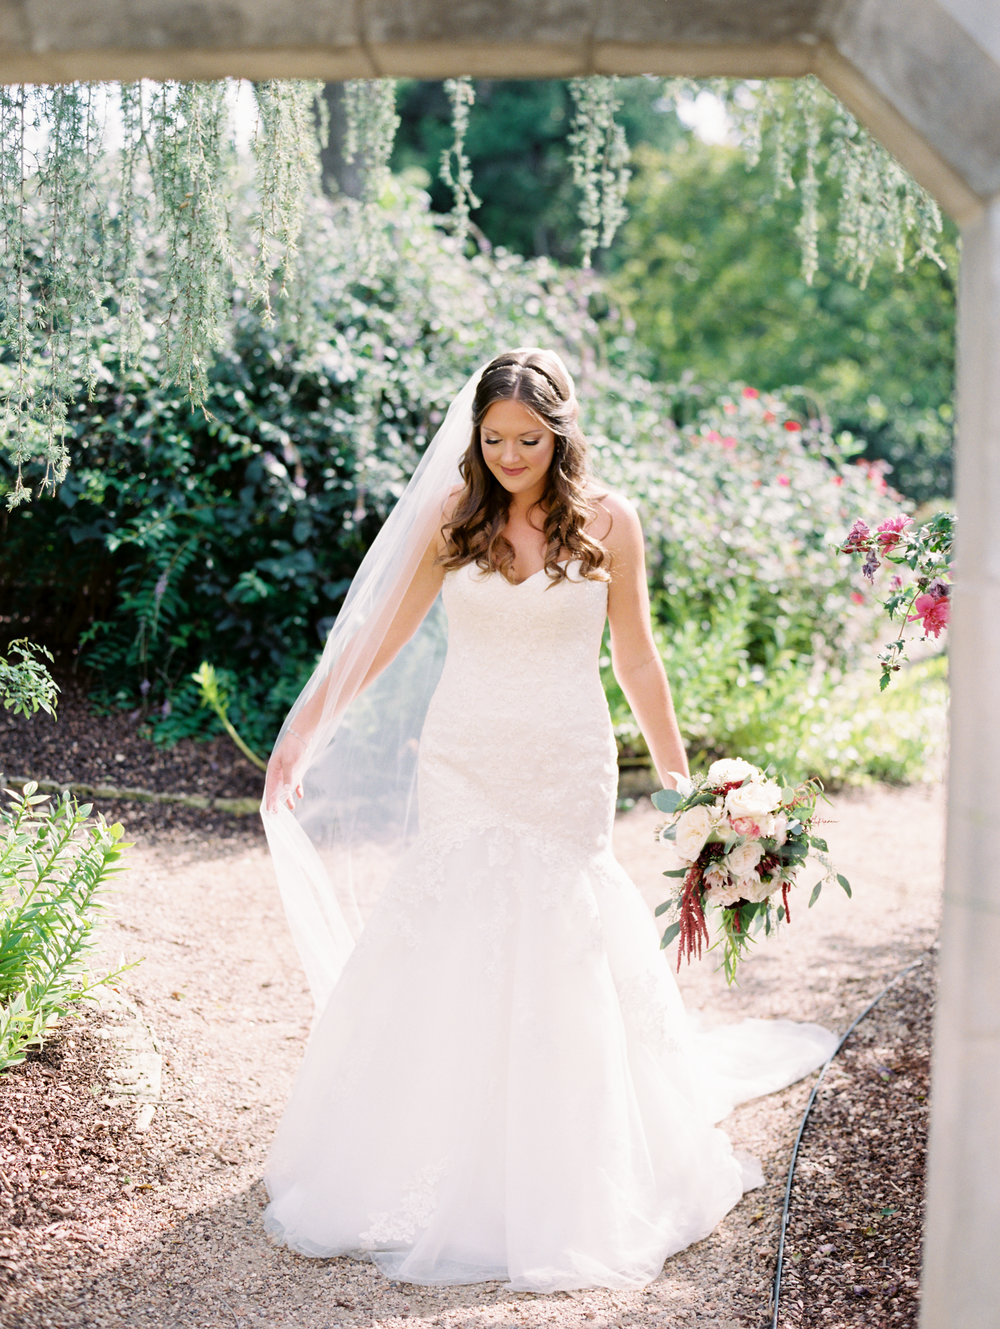 dallas-arboretum-botanical-garden-bridals-ar-photography-dana-45.jpg